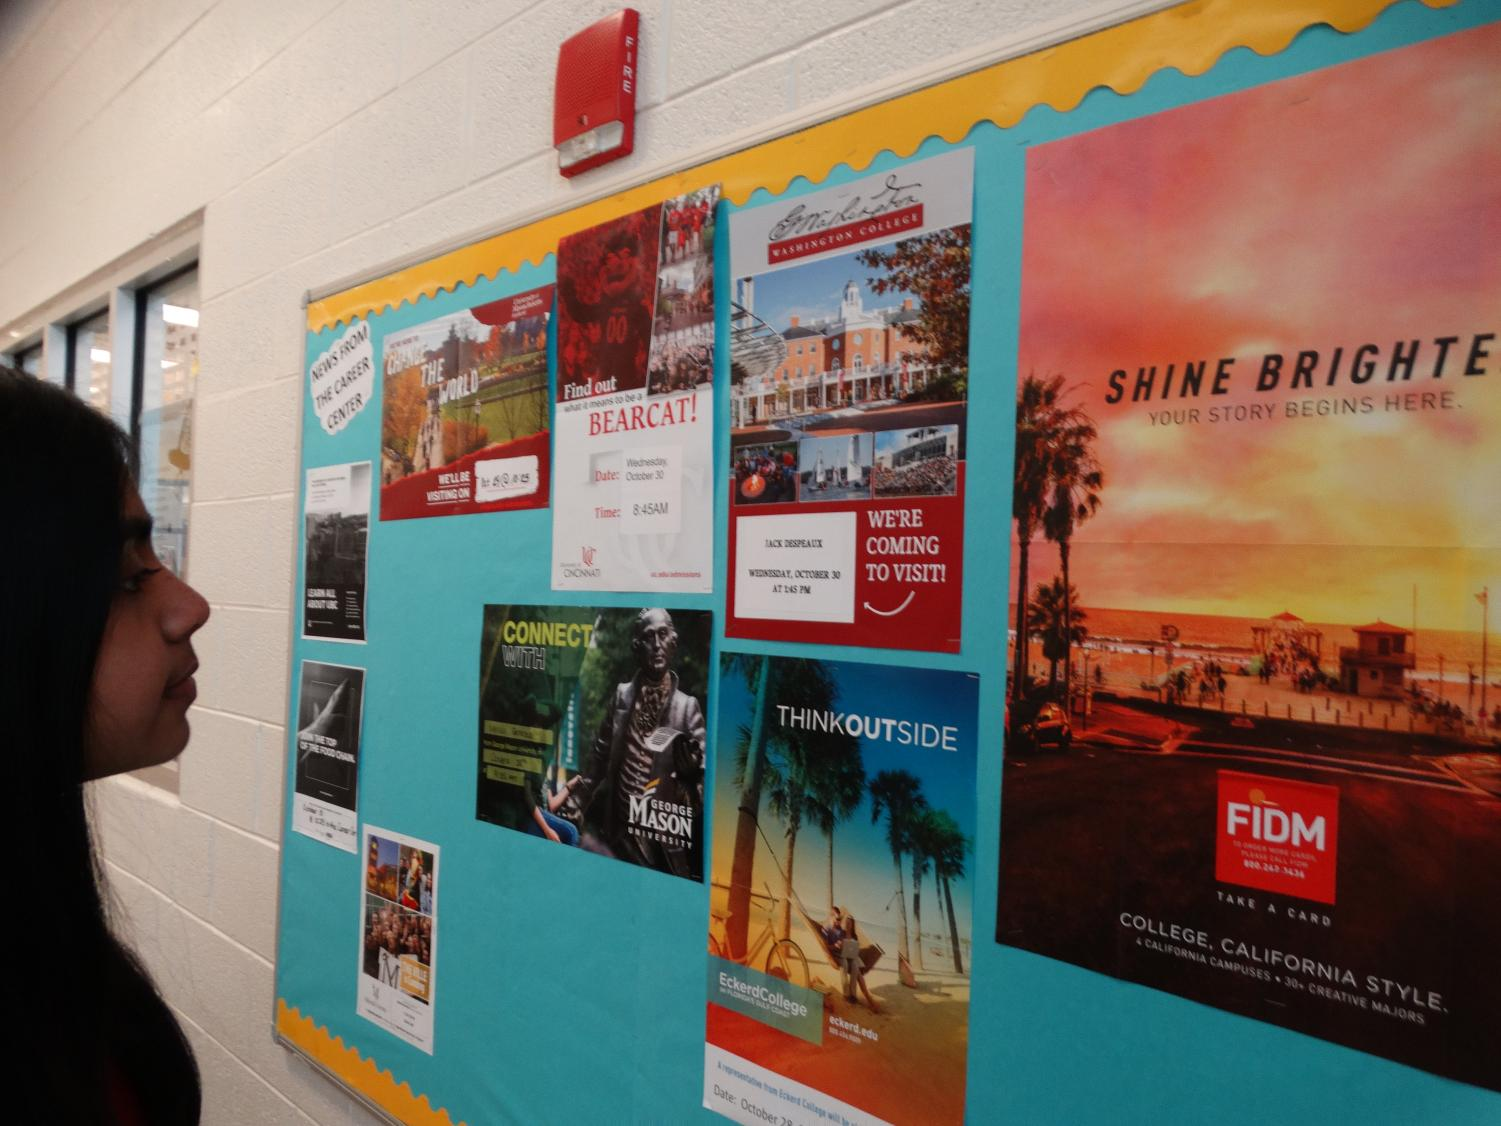 A student examines the different post-high school college options posted on the wall.